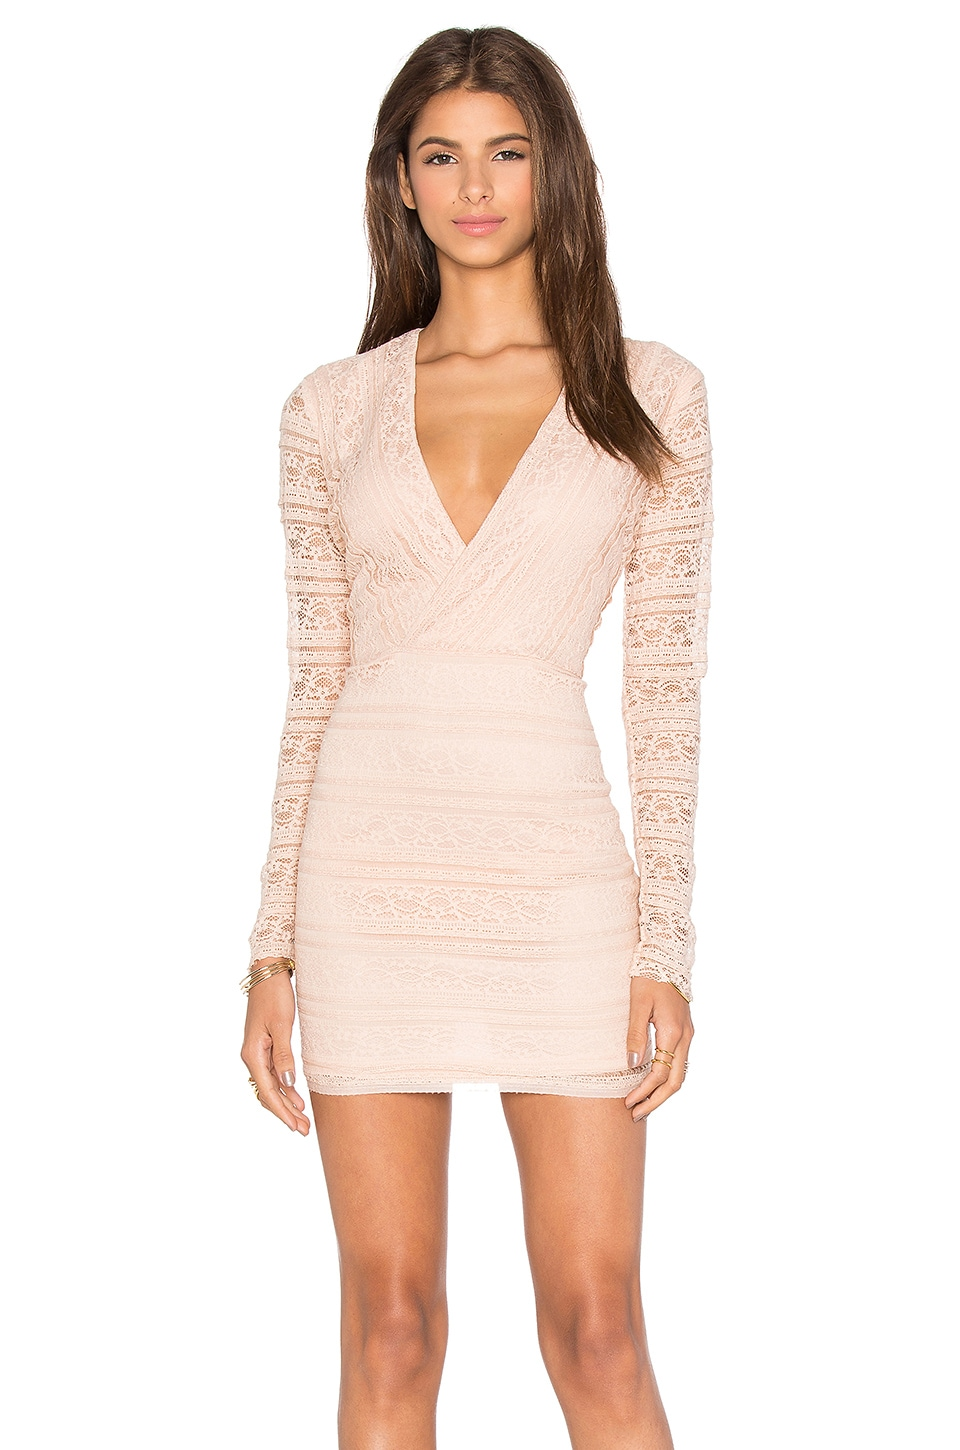 Miamell Woven Dress by Endless Rose